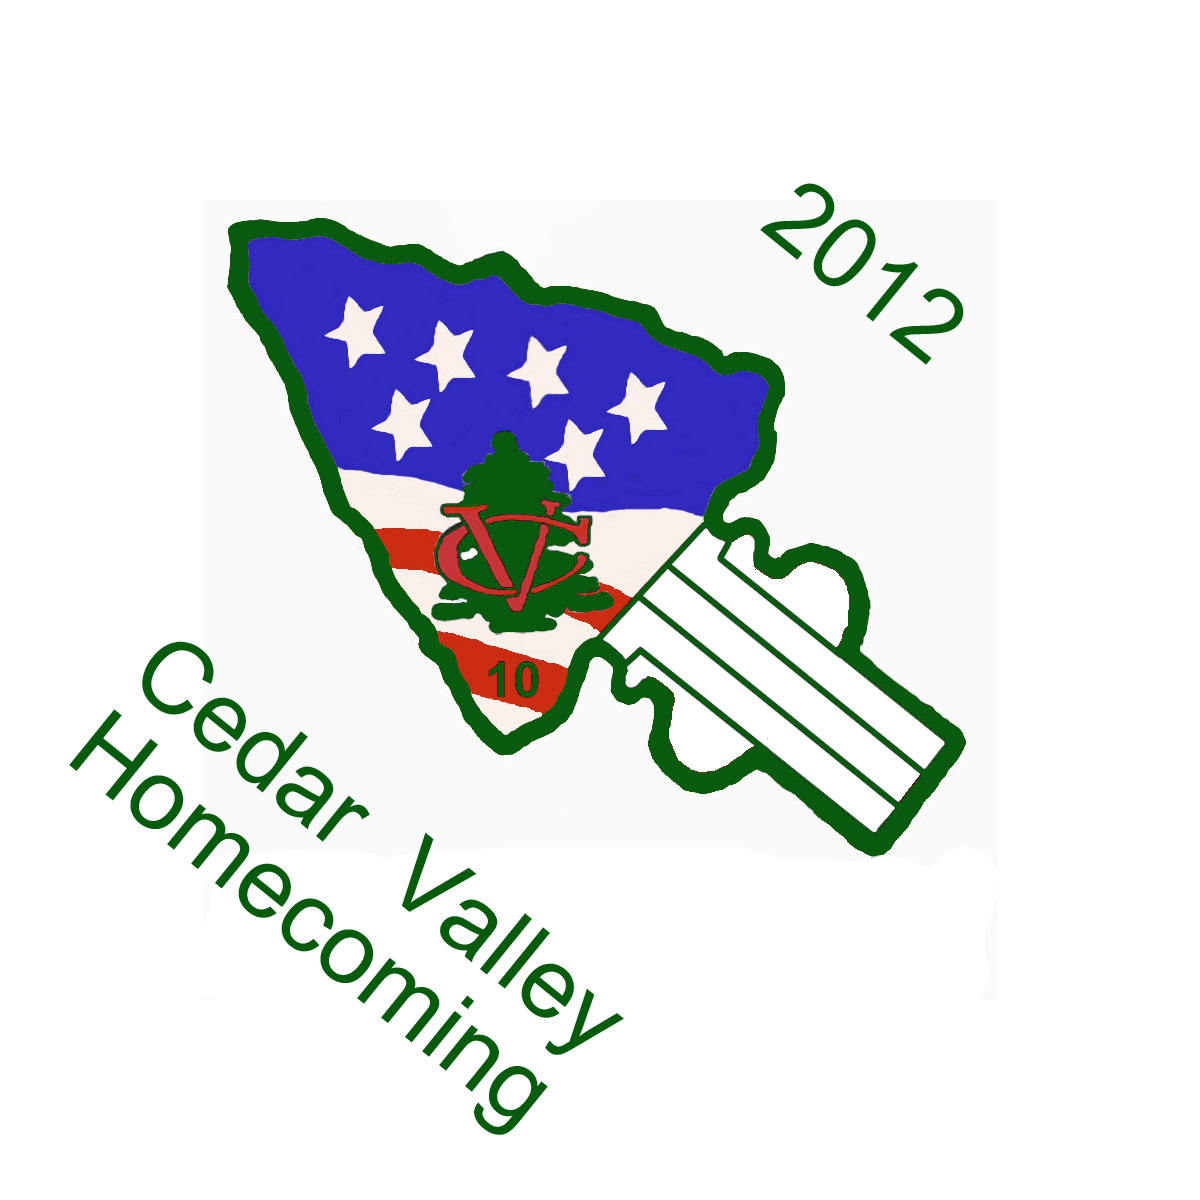 Highlands Ranch Shooting Update: Camp Cedar Valley Homecoming